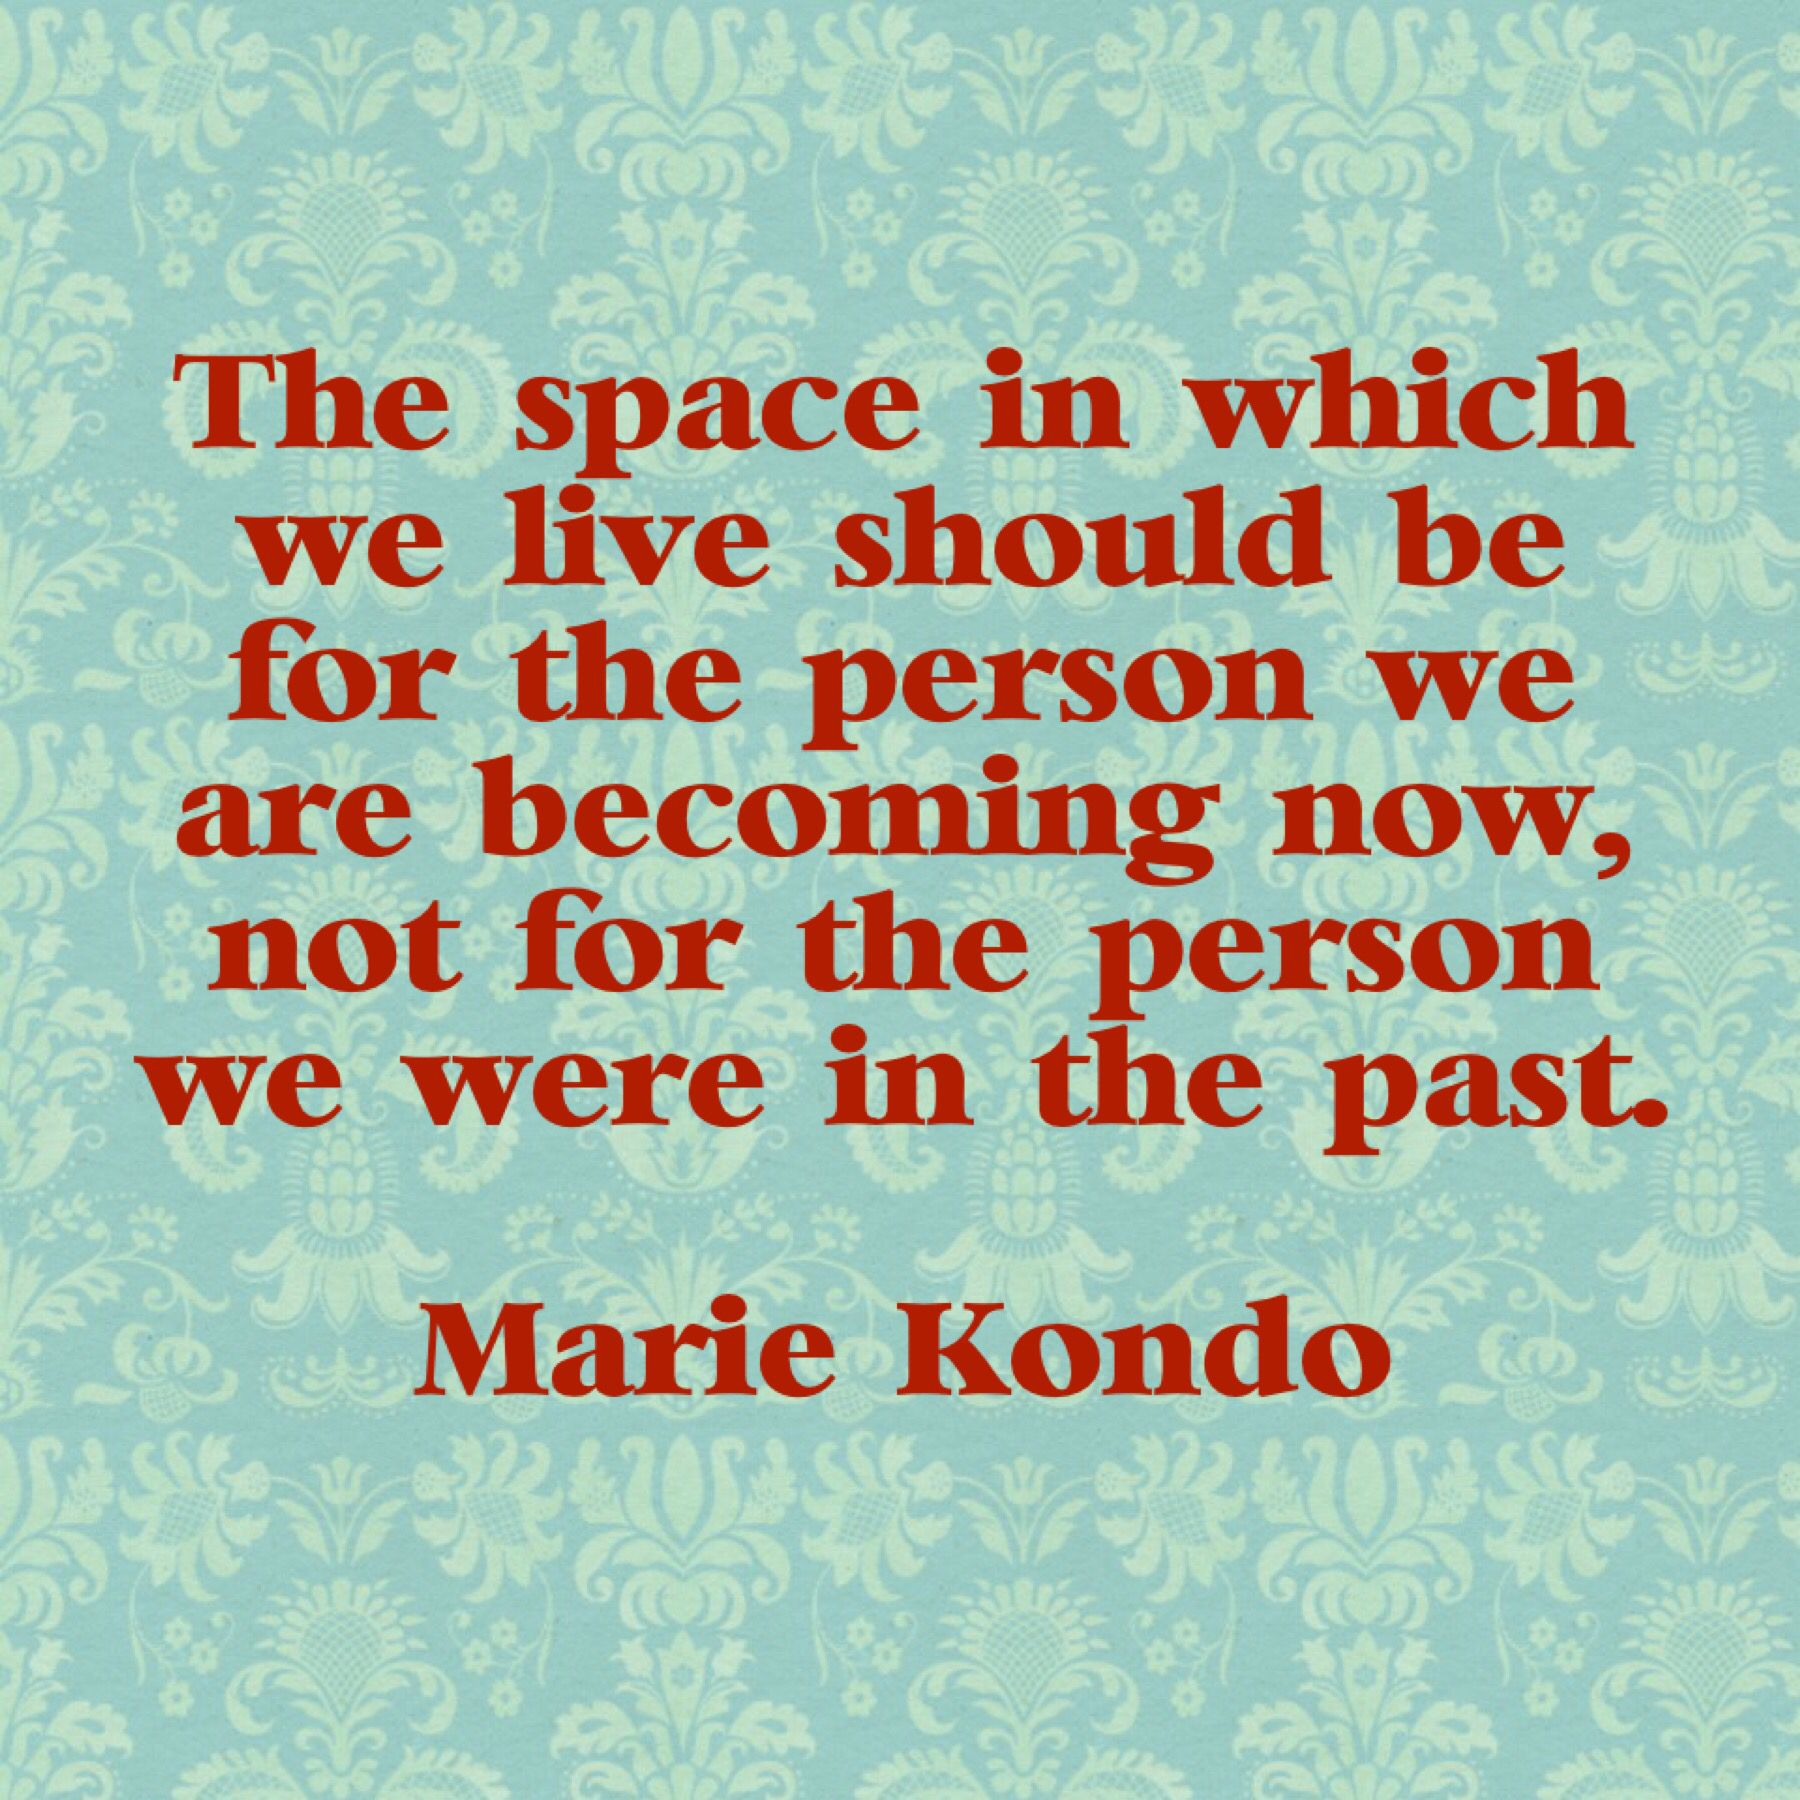 Marie Kondo Küche Marie Kondo Quote That Touched Me On Getting Rid Of Old